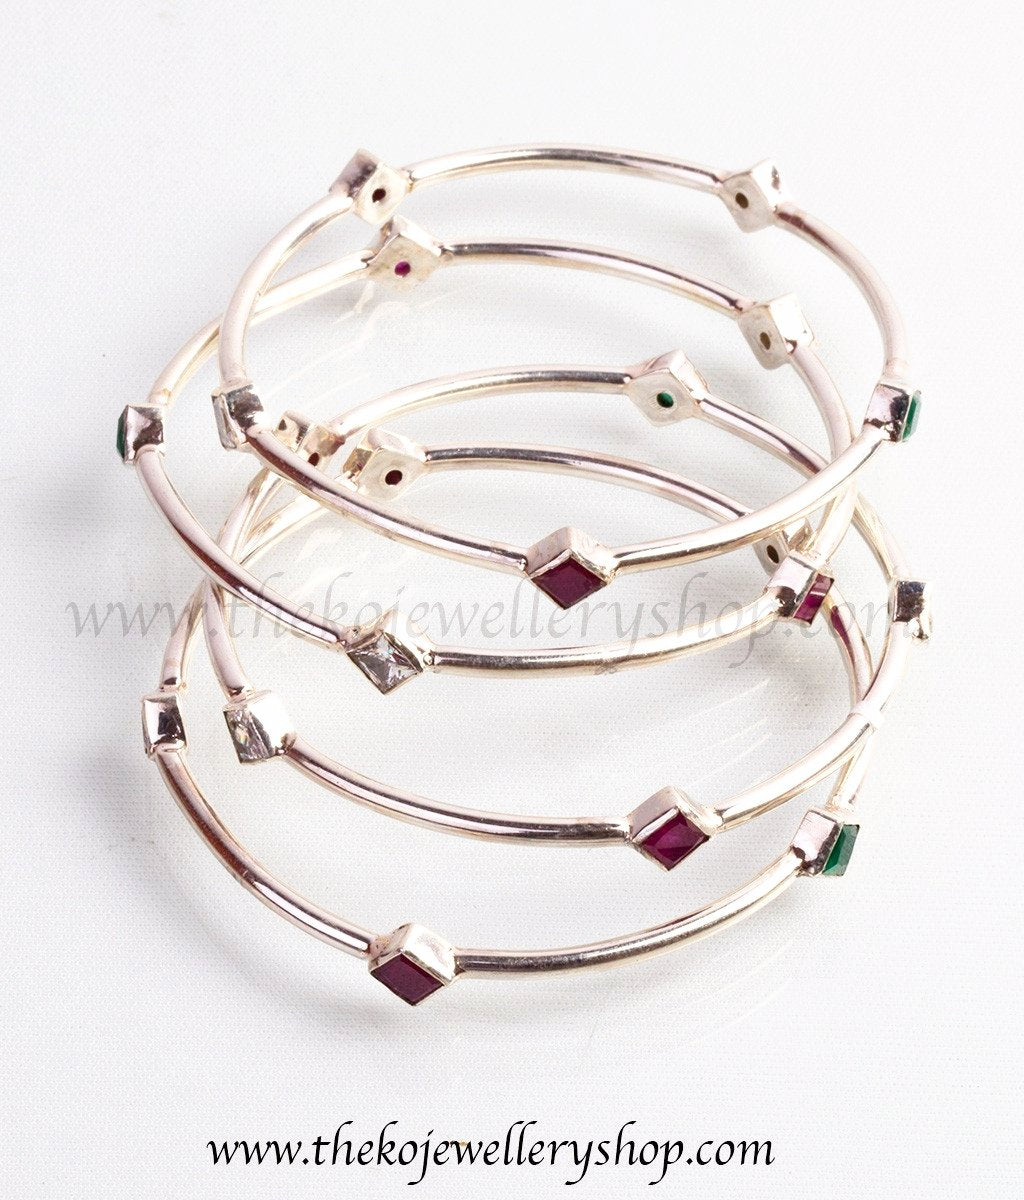 amazon women buy bangles ethnic jewellery dp bracelets online prices plated size bindhani for in traditional silver low india oxidized tribal at set